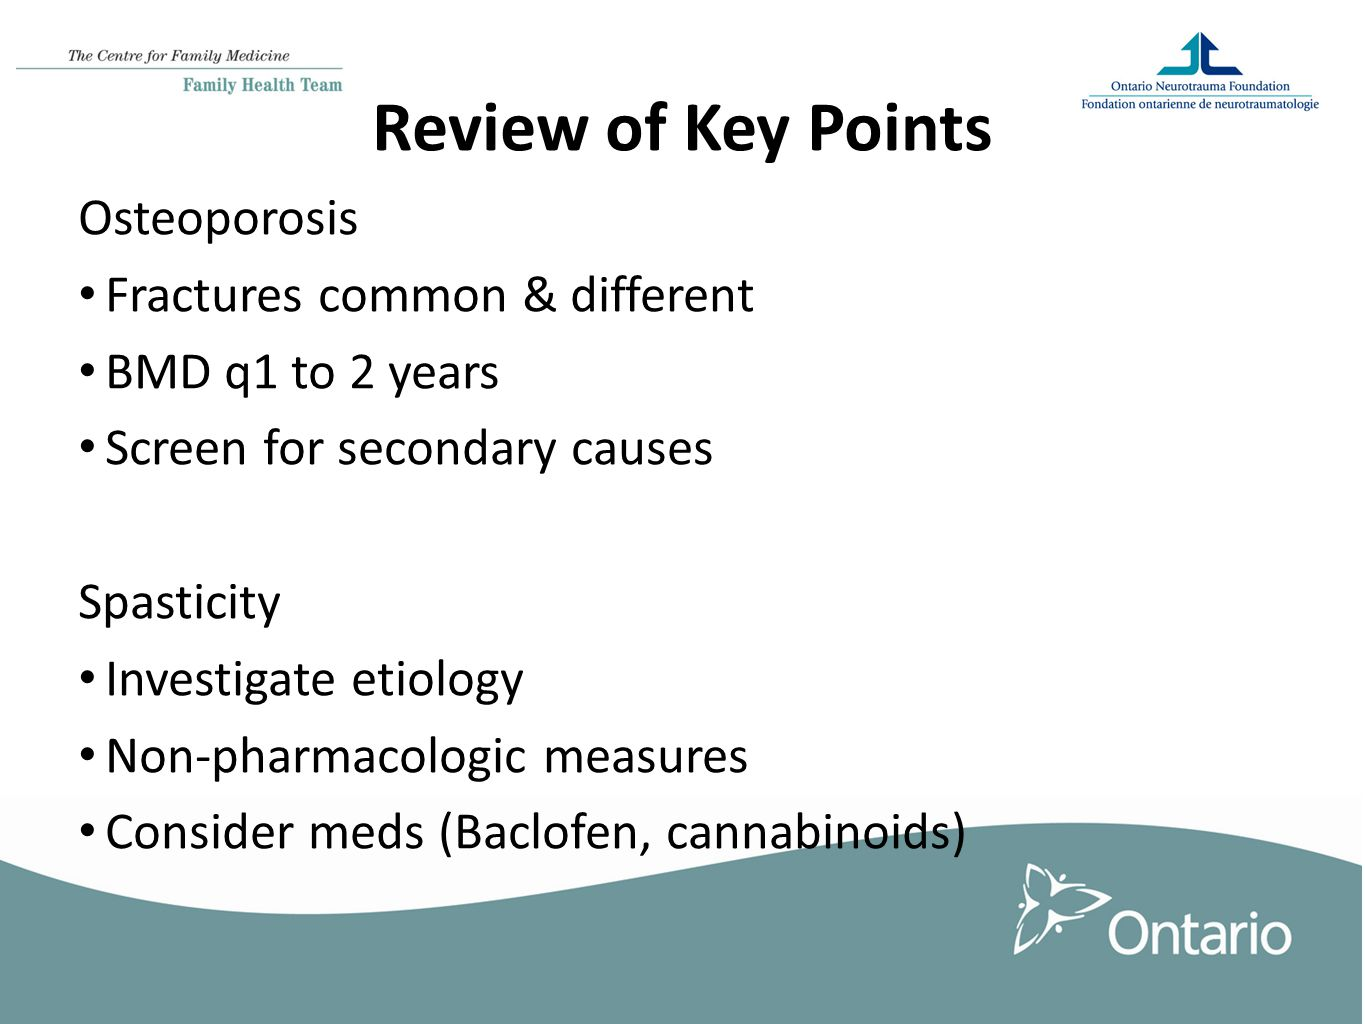 Review of Key Points Osteoporosis Fractures common & different BMD q1 to 2 years Screen for secondary causes Spasticity Investigate etiology Non-pharmacologic measures Consider meds (Baclofen, cannabinoids)